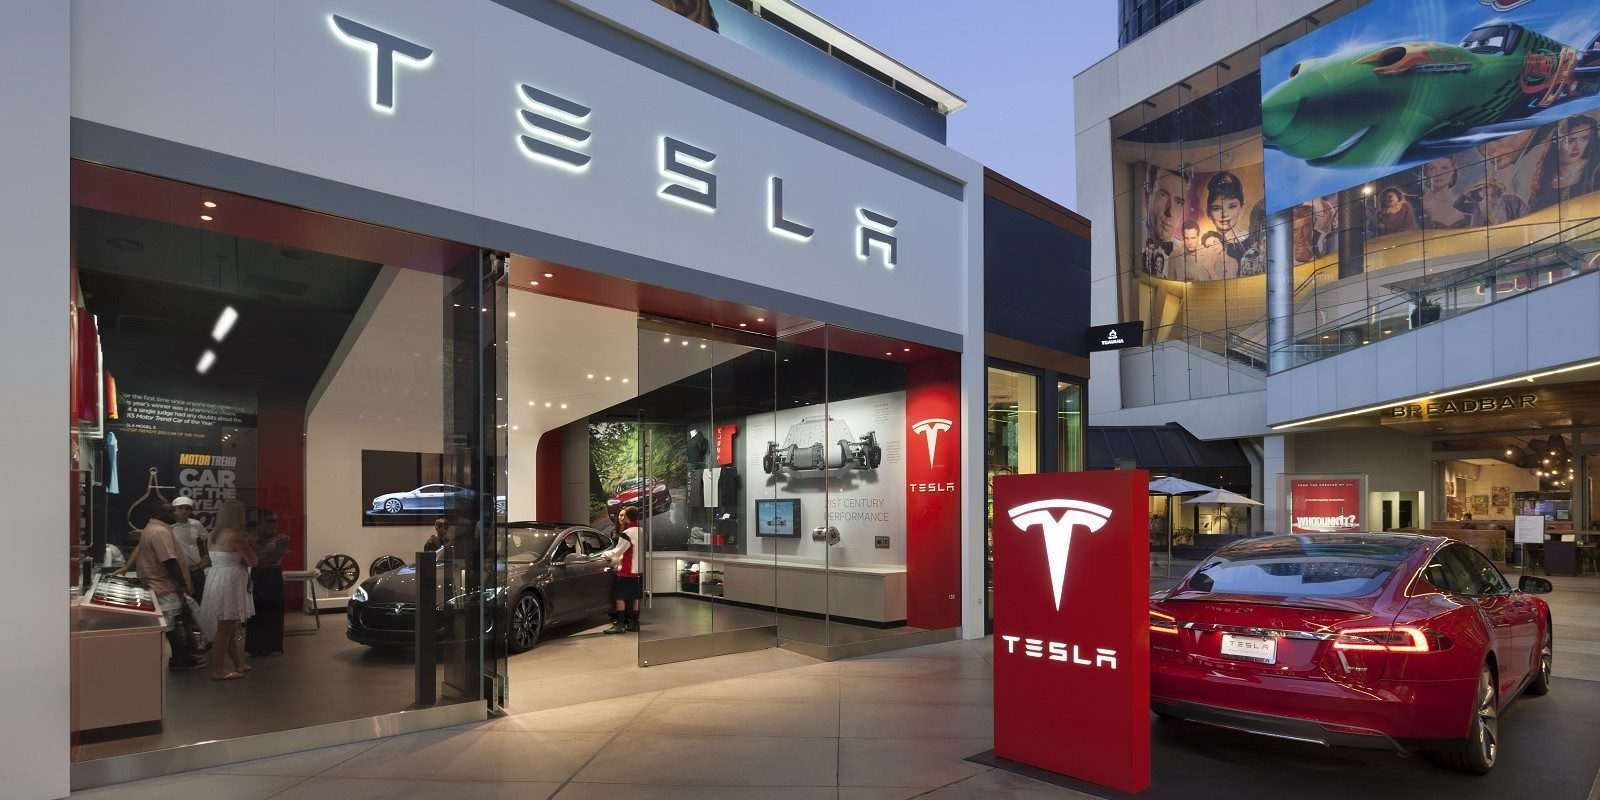 Tesla Job Posts Hint It Will Enter Singapore Market Soon